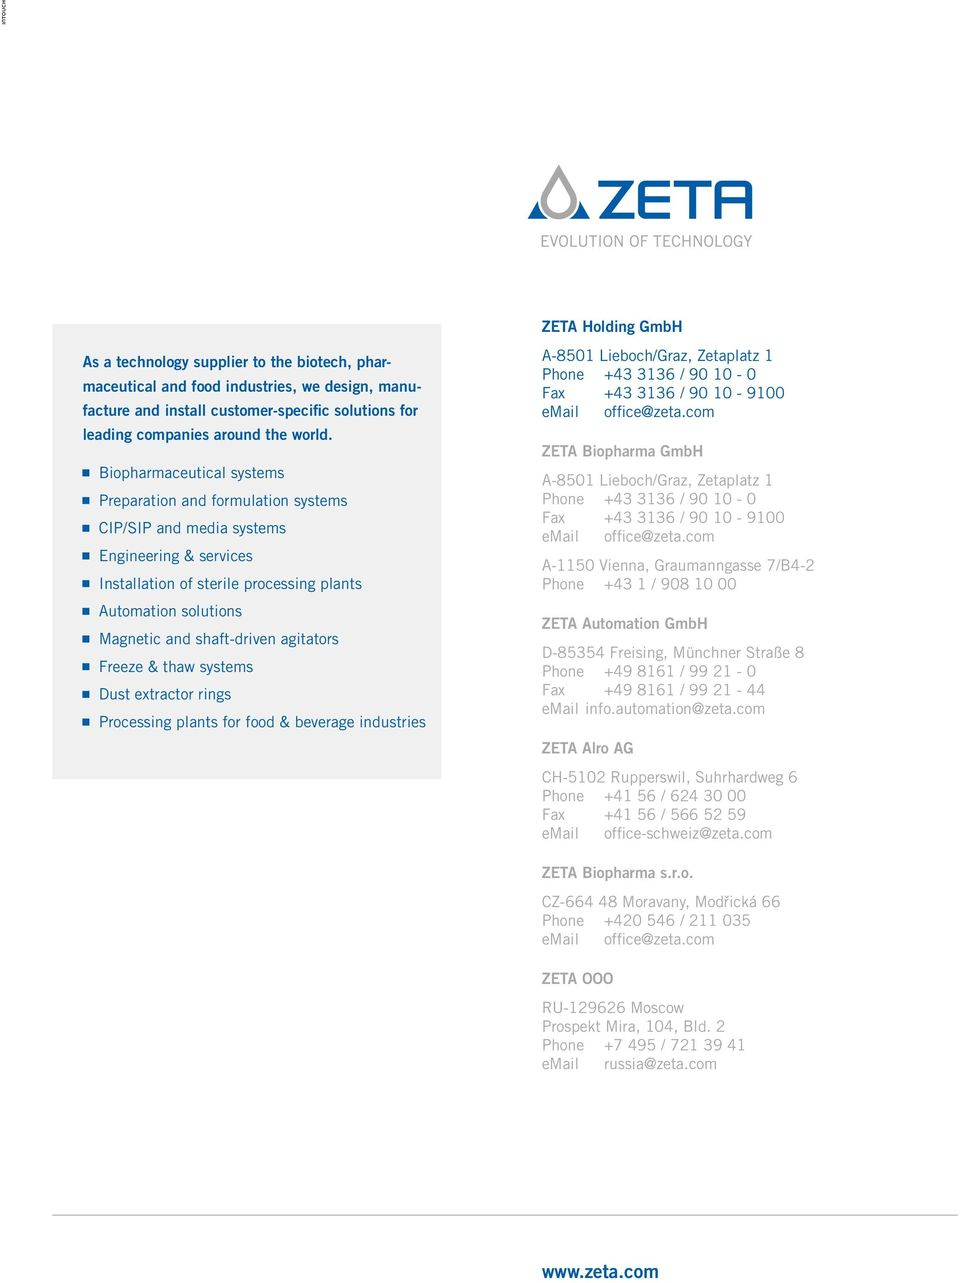 Zeta magnetic agitators  For applications in sterile process